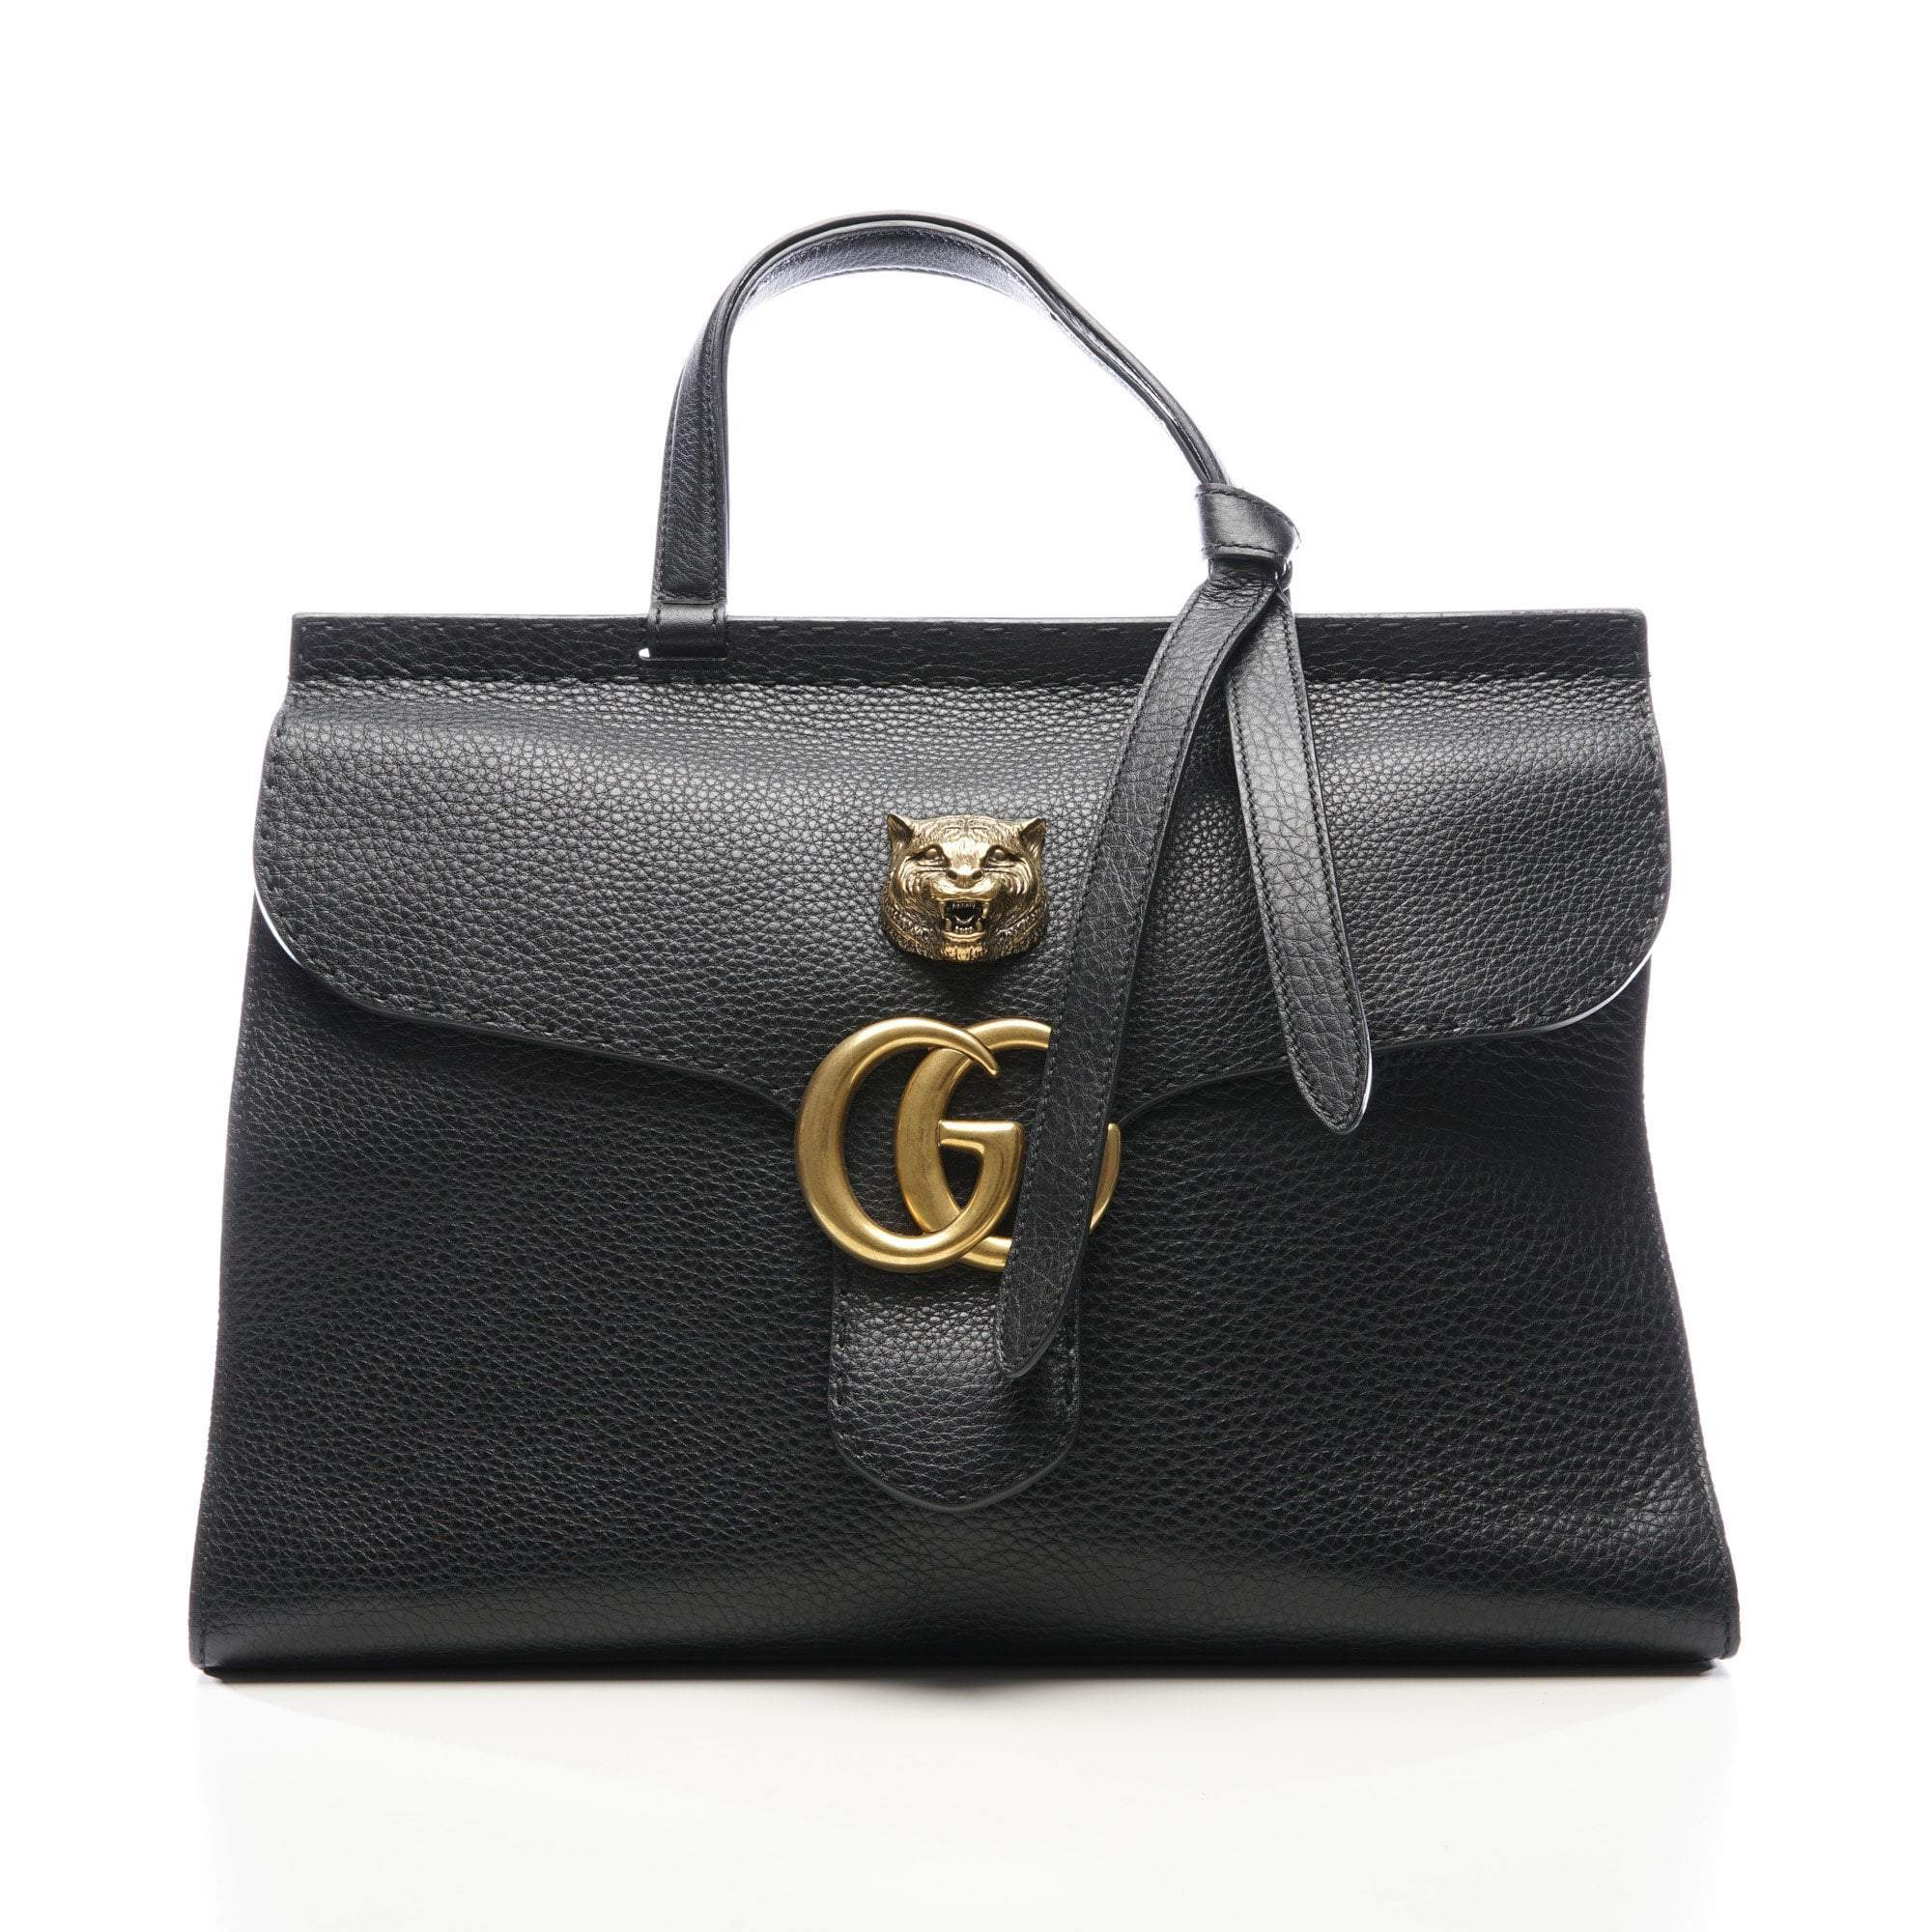 Gucci Calfskin Medium GG Marmont Top Handle Bag Black